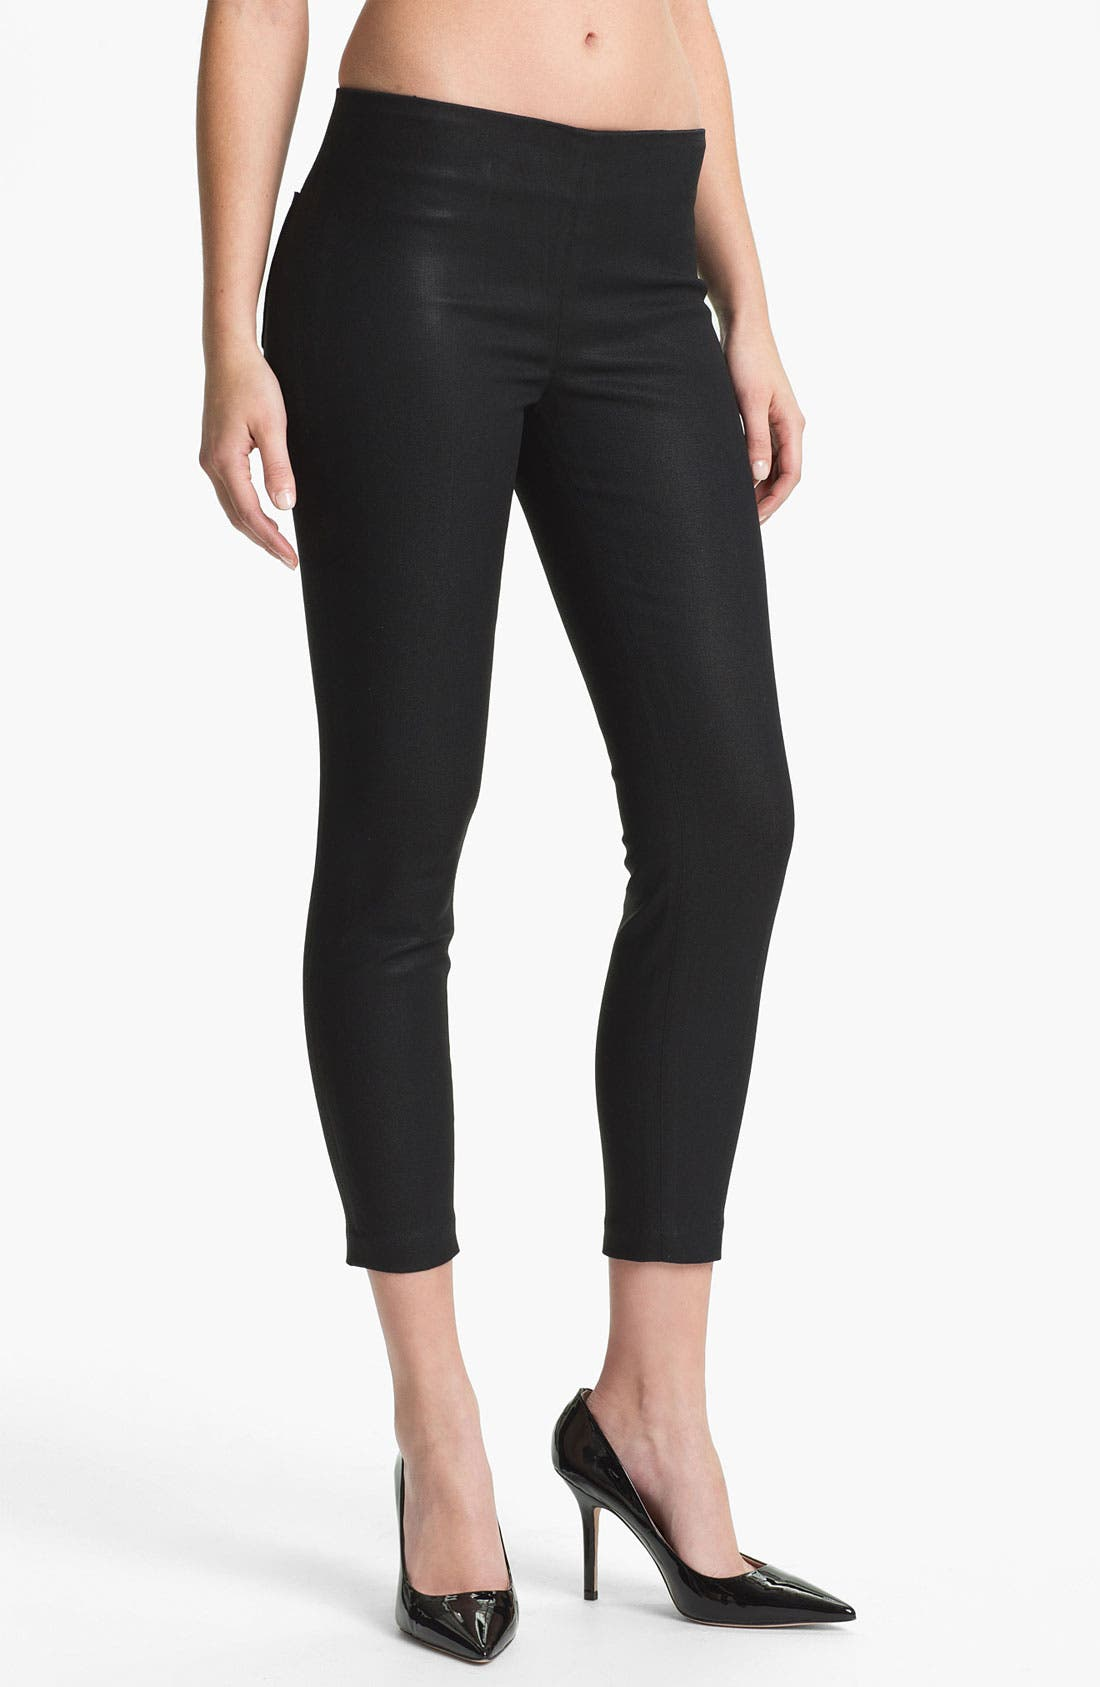 Main Image - J Brand Stretch Capri Leggings (Coated Black)